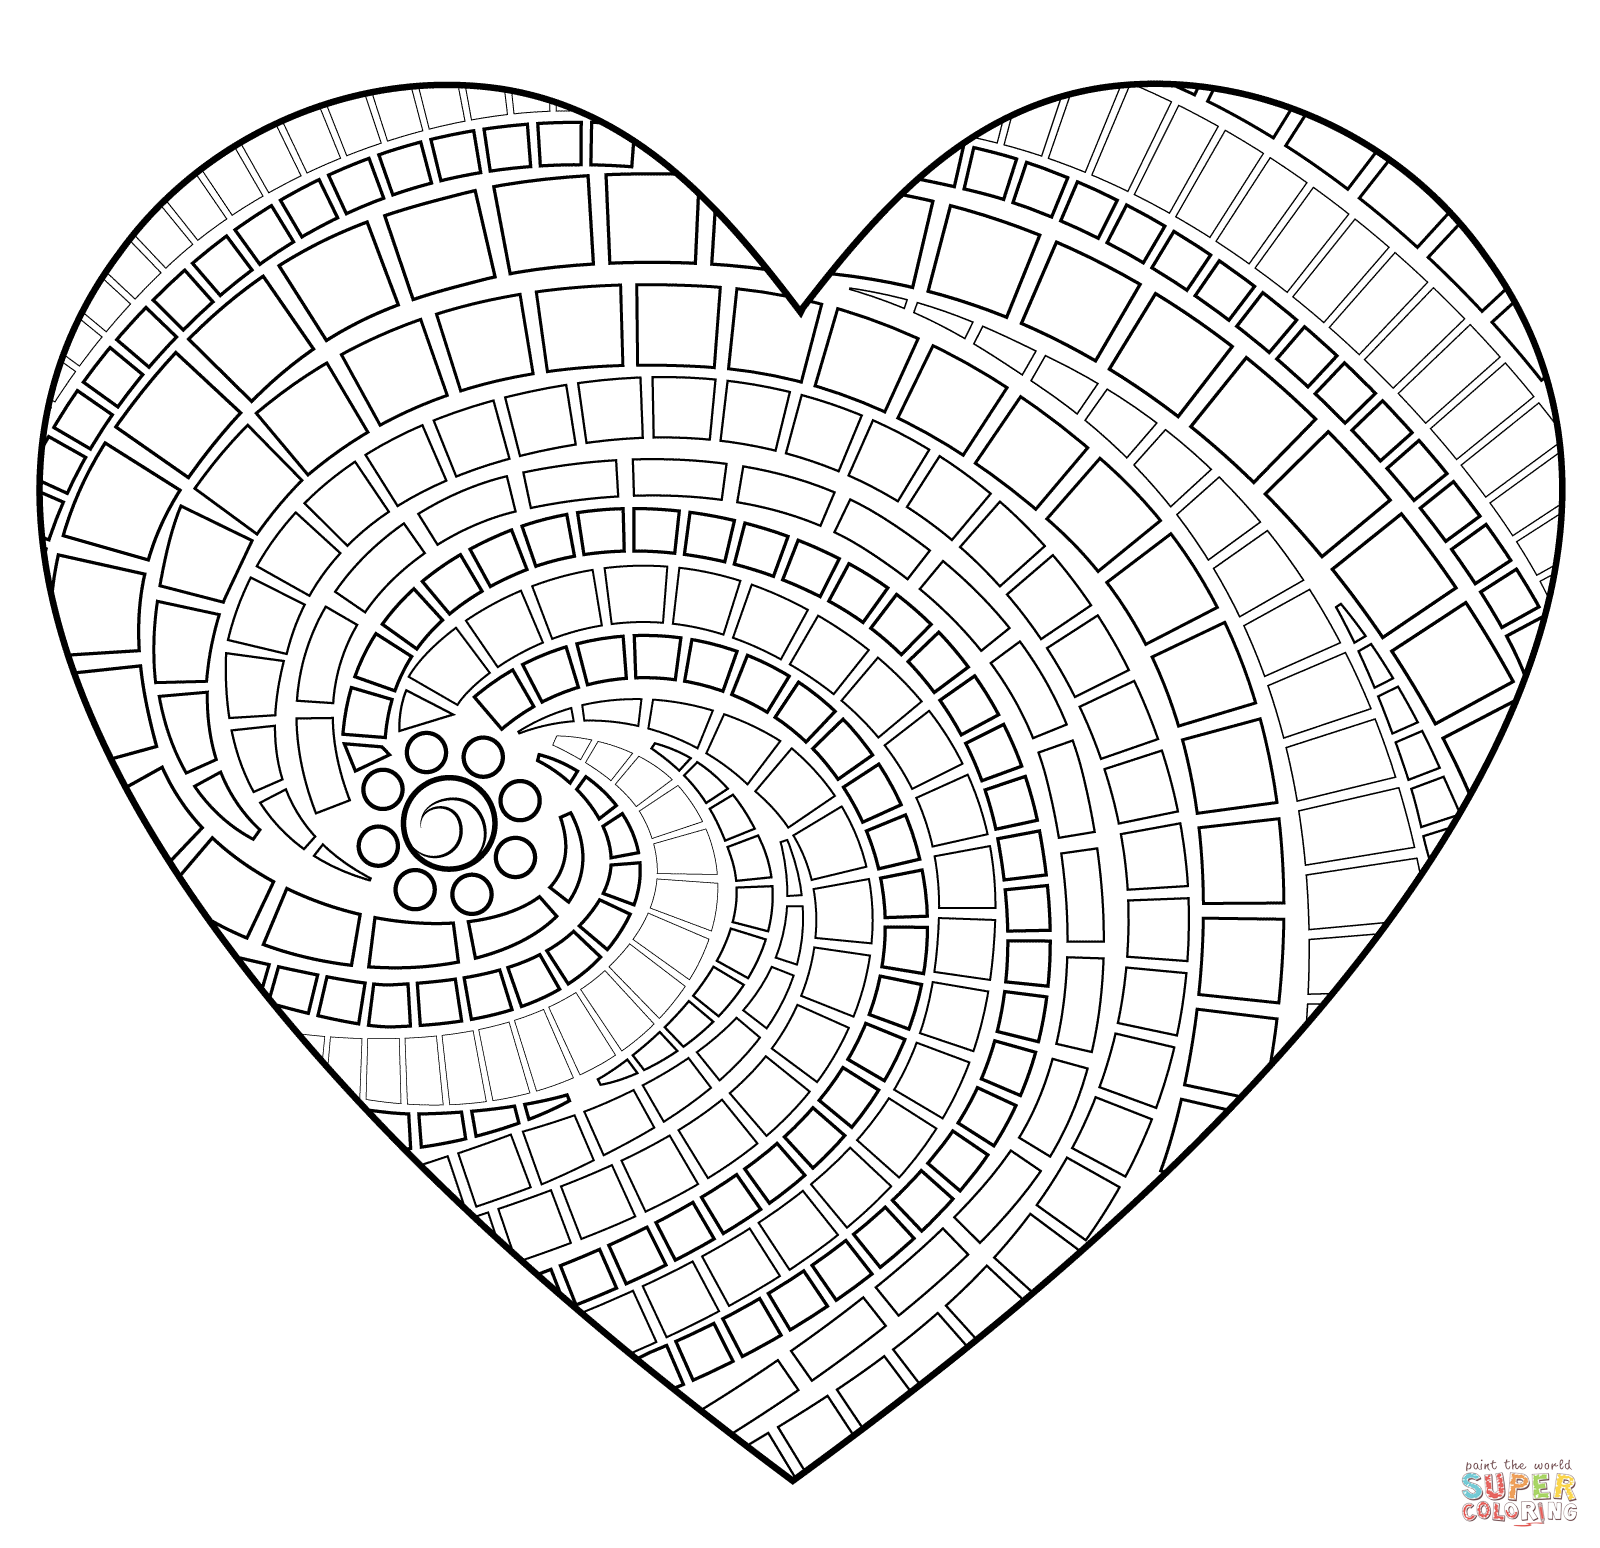 free mosaic patterns to print click the heart mosaic coloring pages to view printable version or